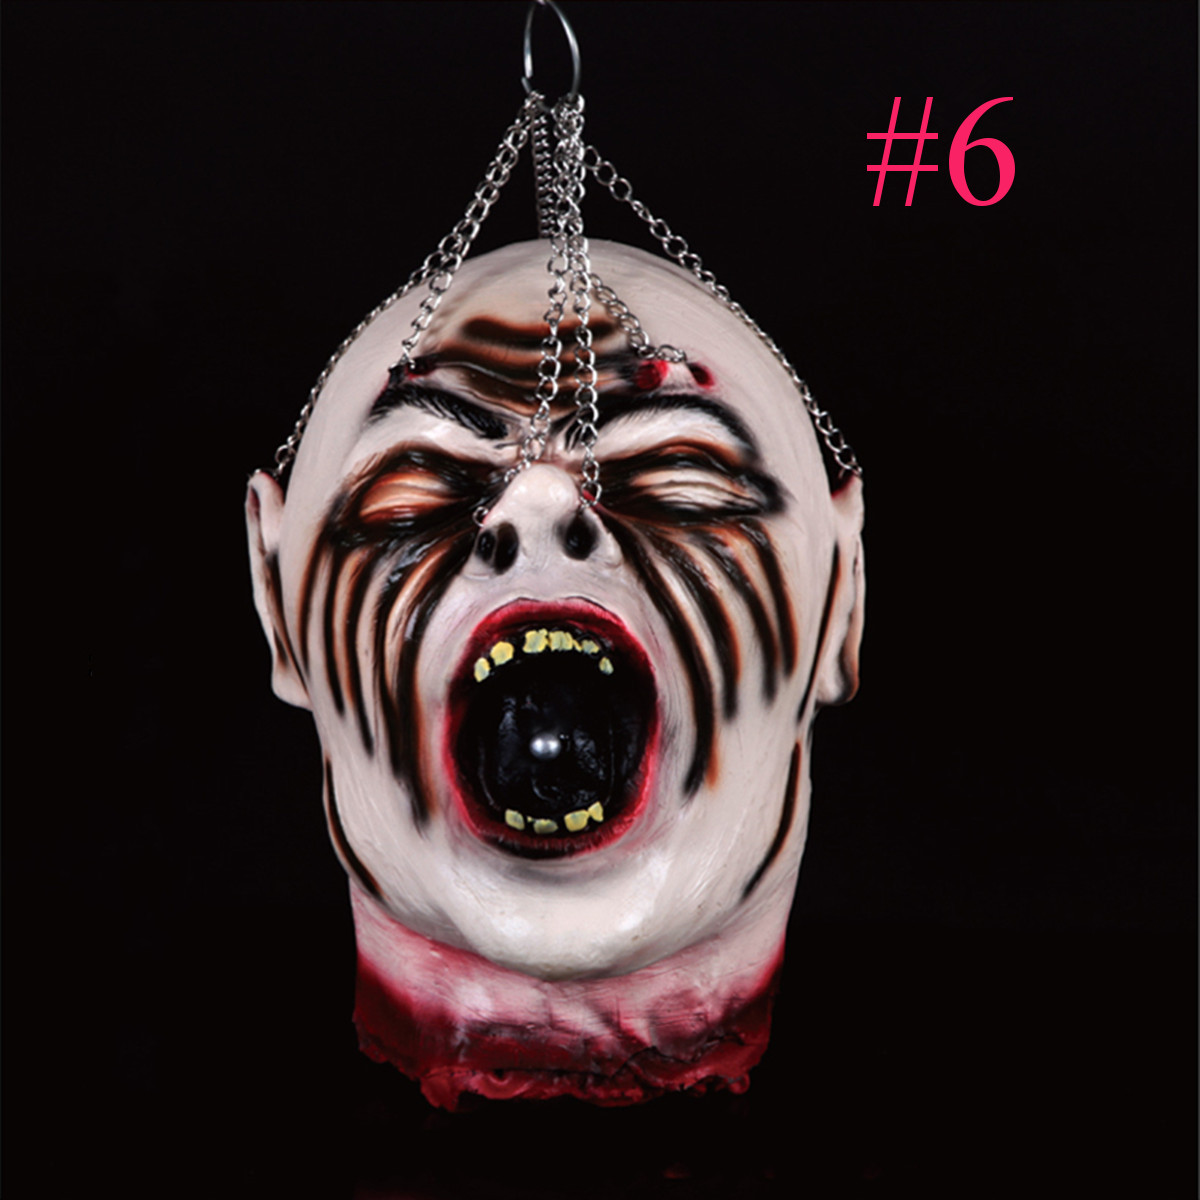 Scary halloween props diy scary halloween - Scary Hanging Bloody Head Rubber Latex Life Size Gory